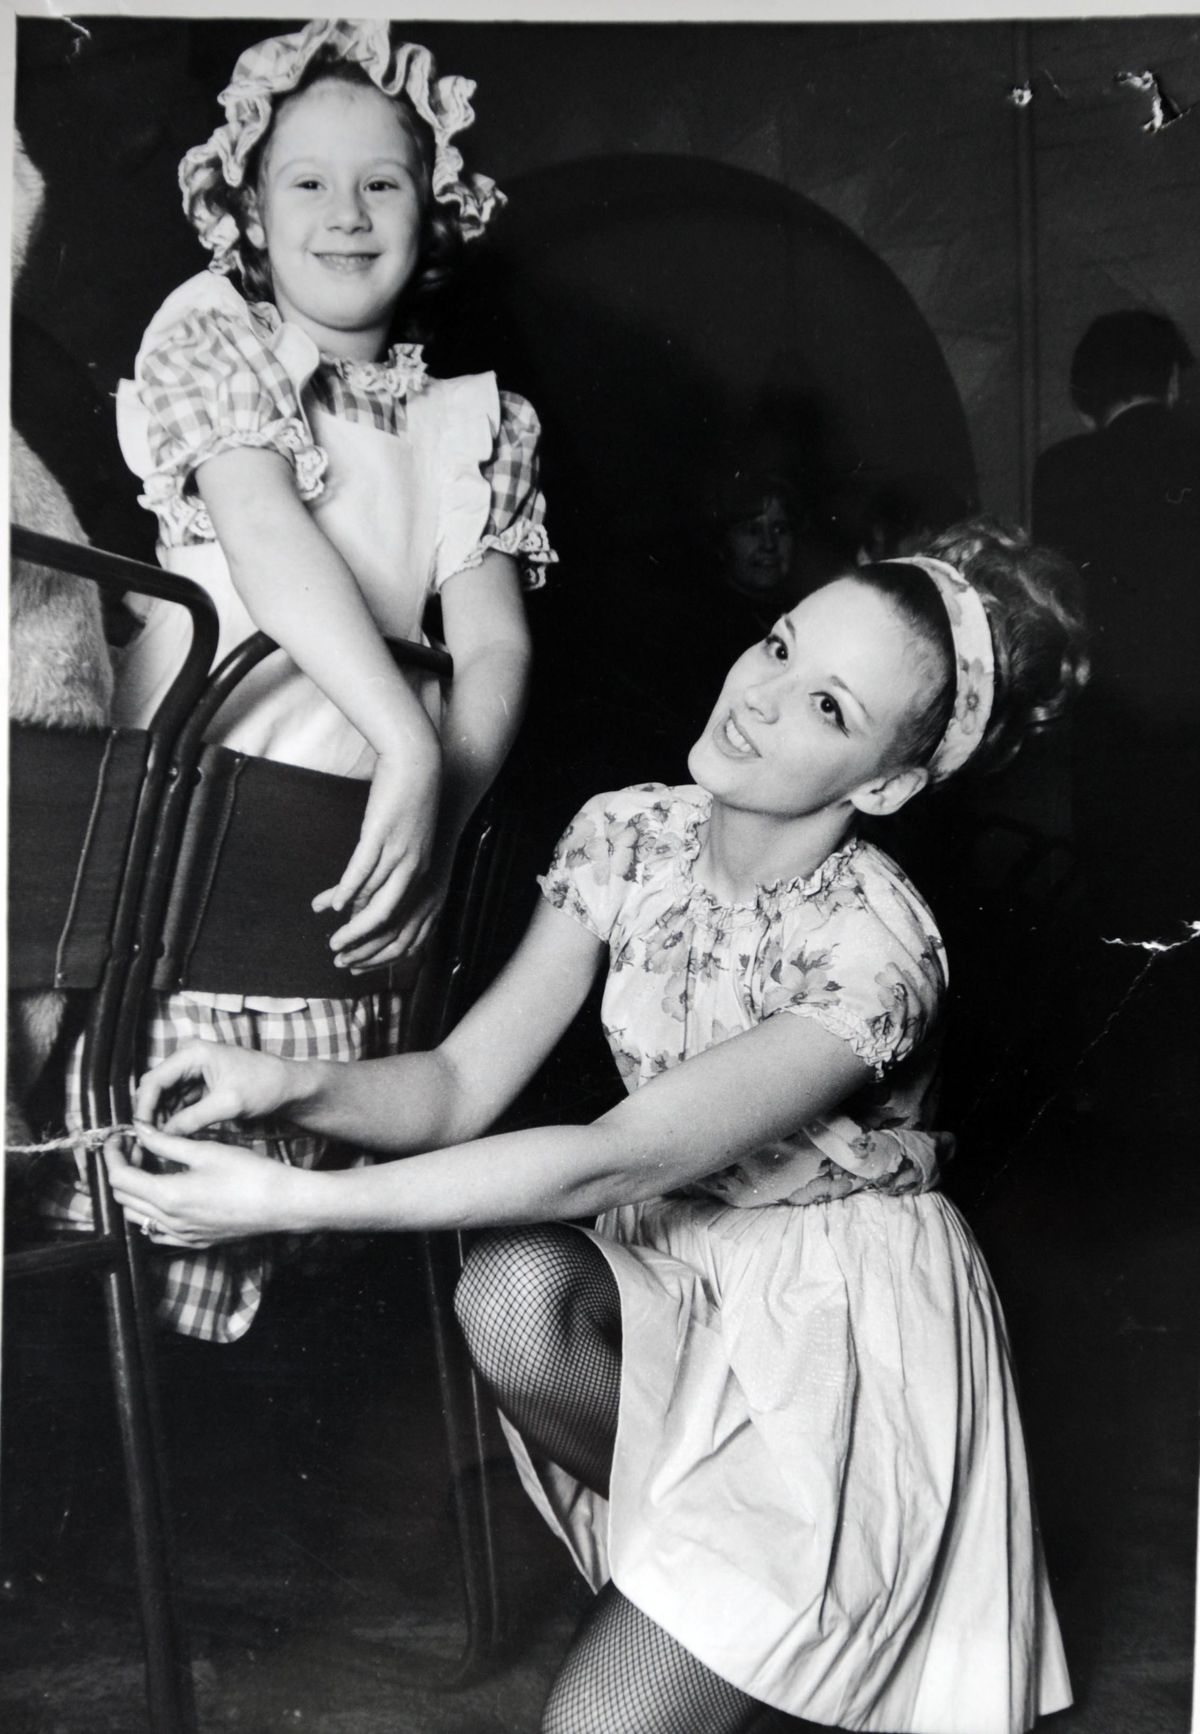 Denise in 1973 with a pupil during her first show